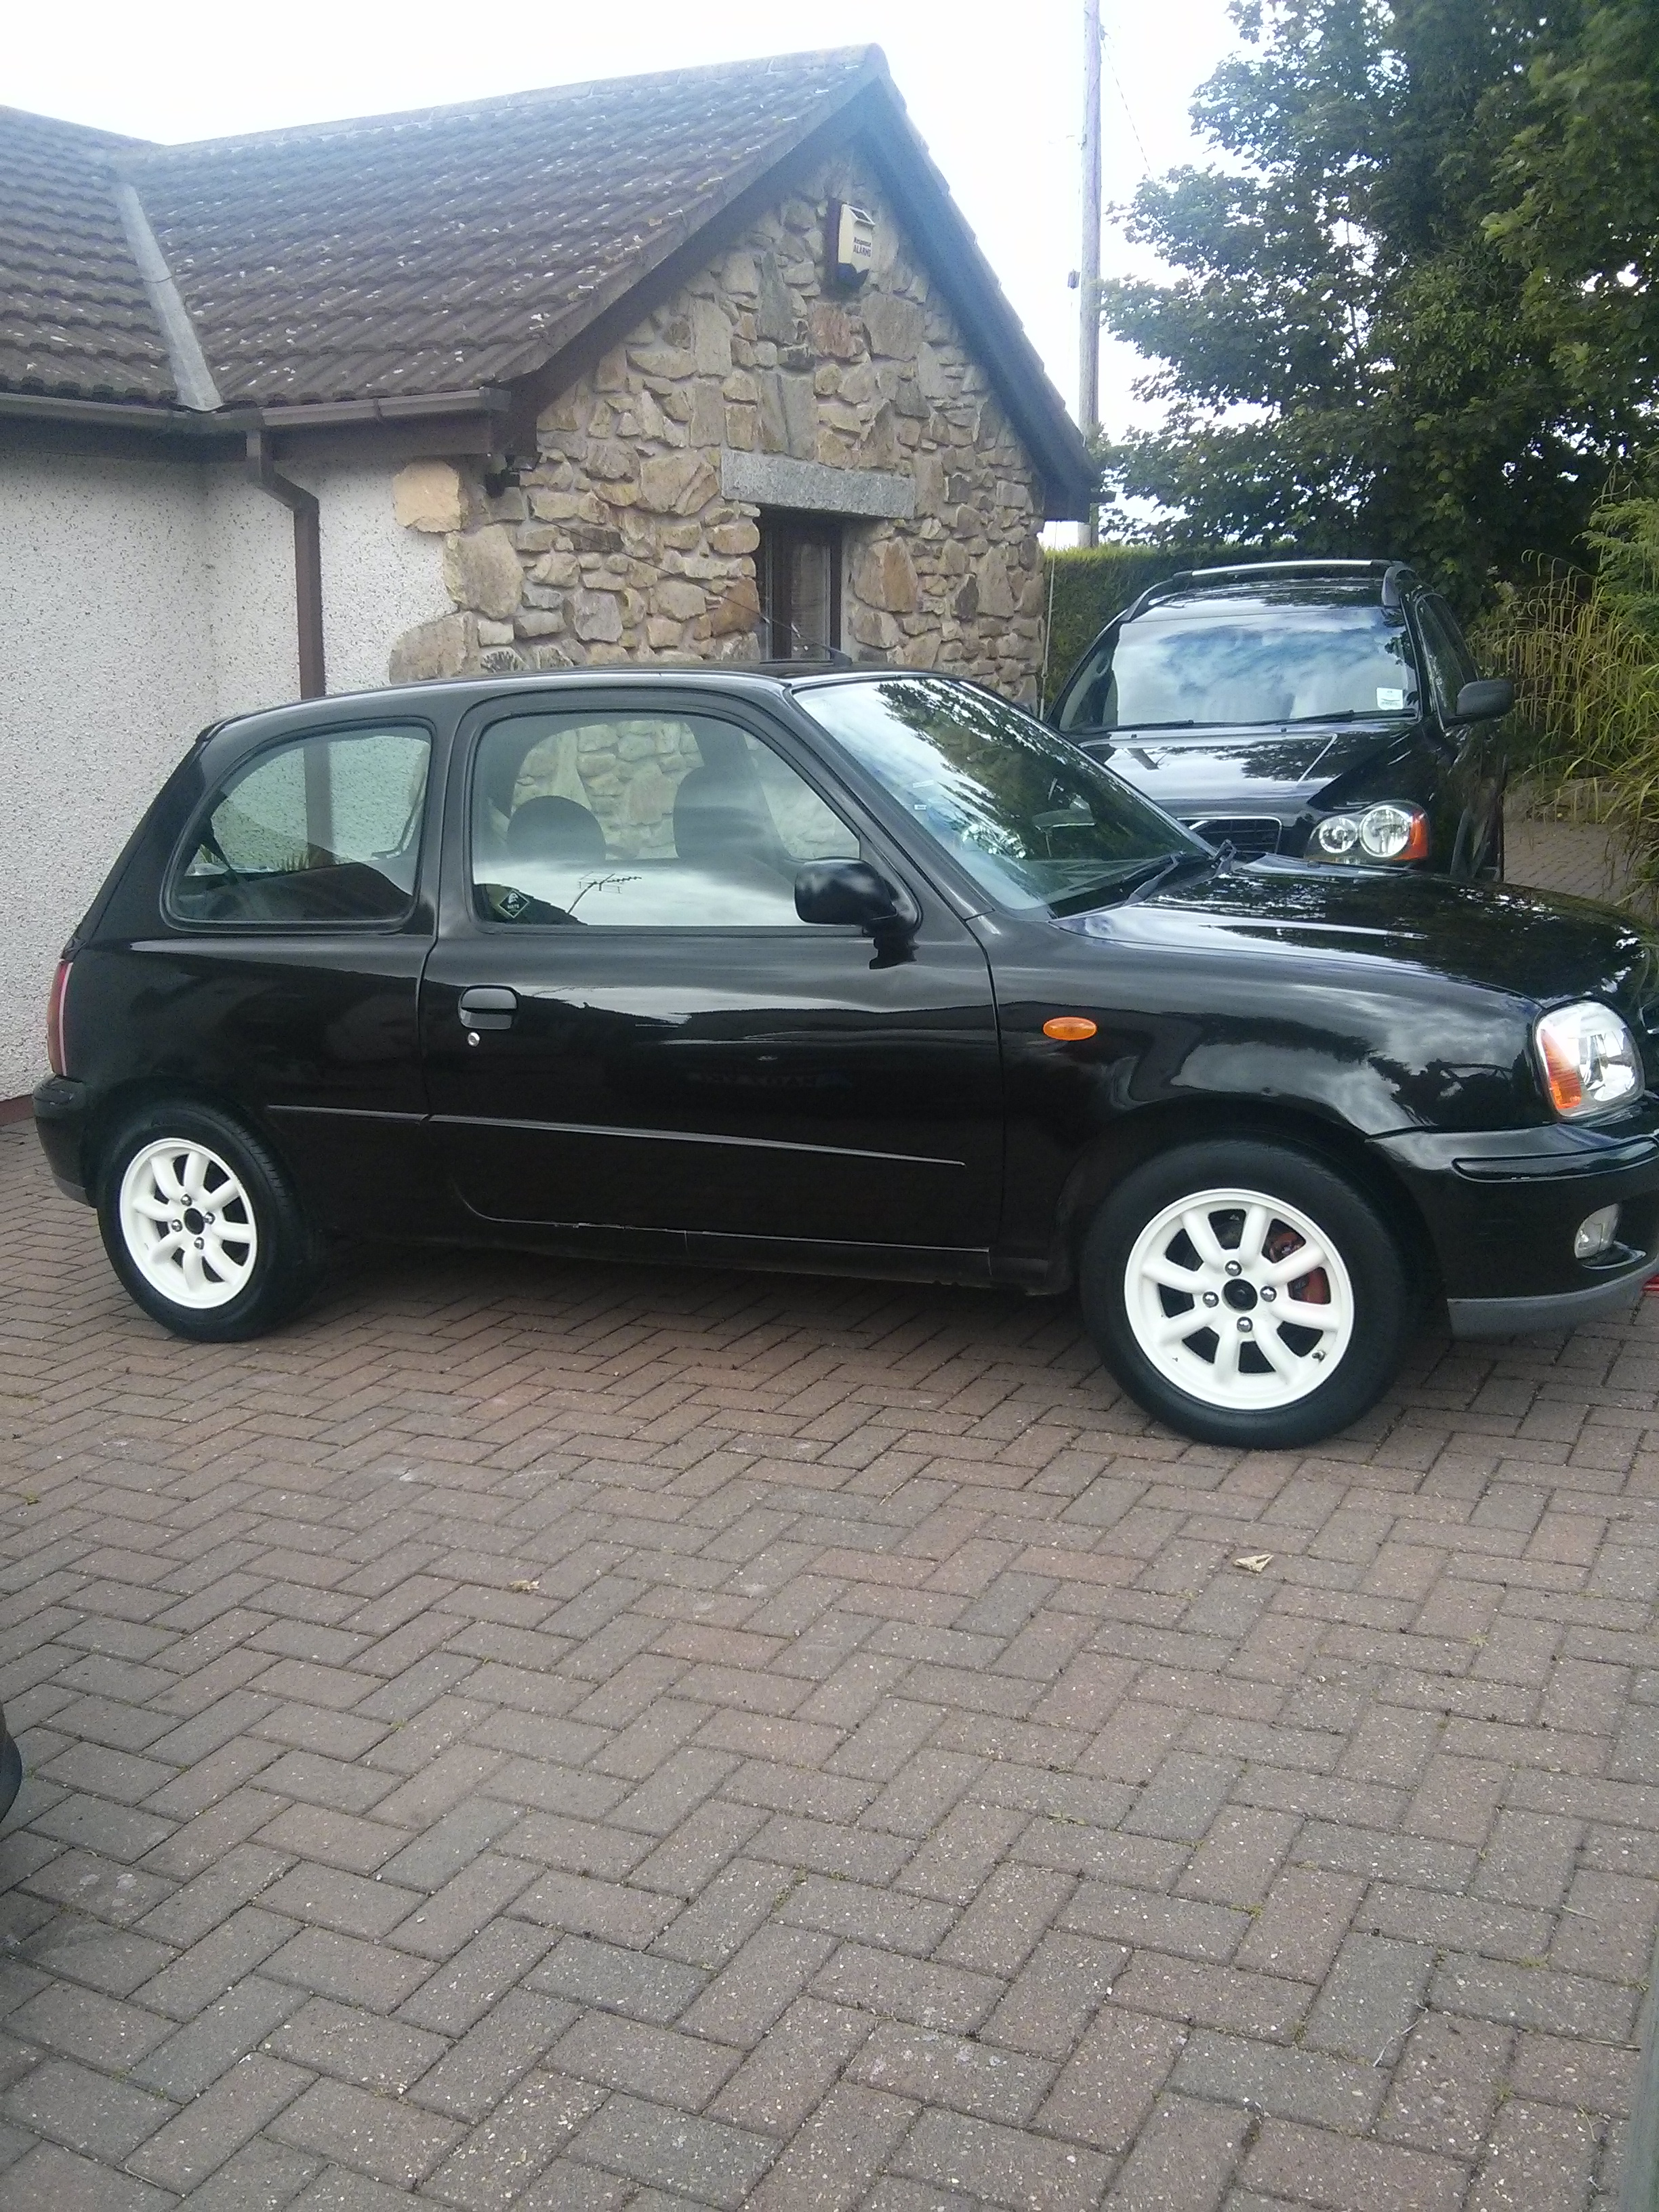 my nissan micra sport black 1l 2003 facelift micra sports club. Black Bedroom Furniture Sets. Home Design Ideas